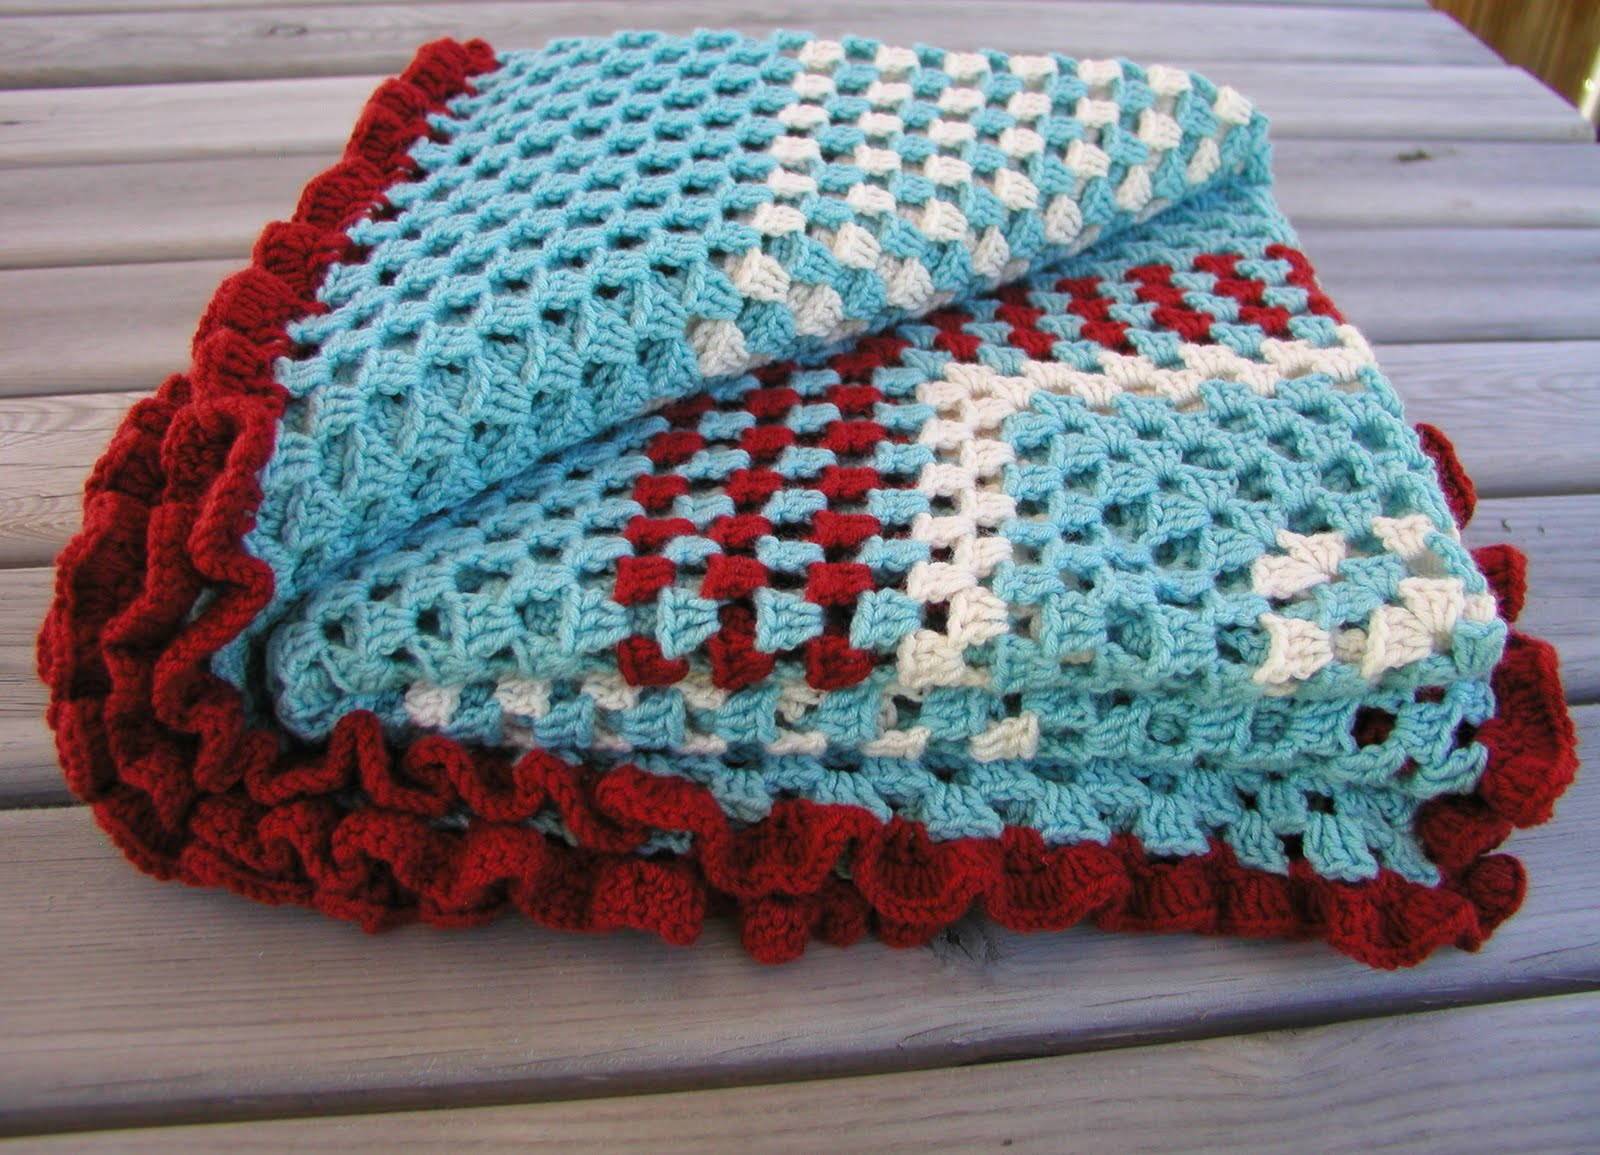 Free Crochet Pattern Ruffle Edging : Hand Knitted Things: Crochet Ruffle Throw